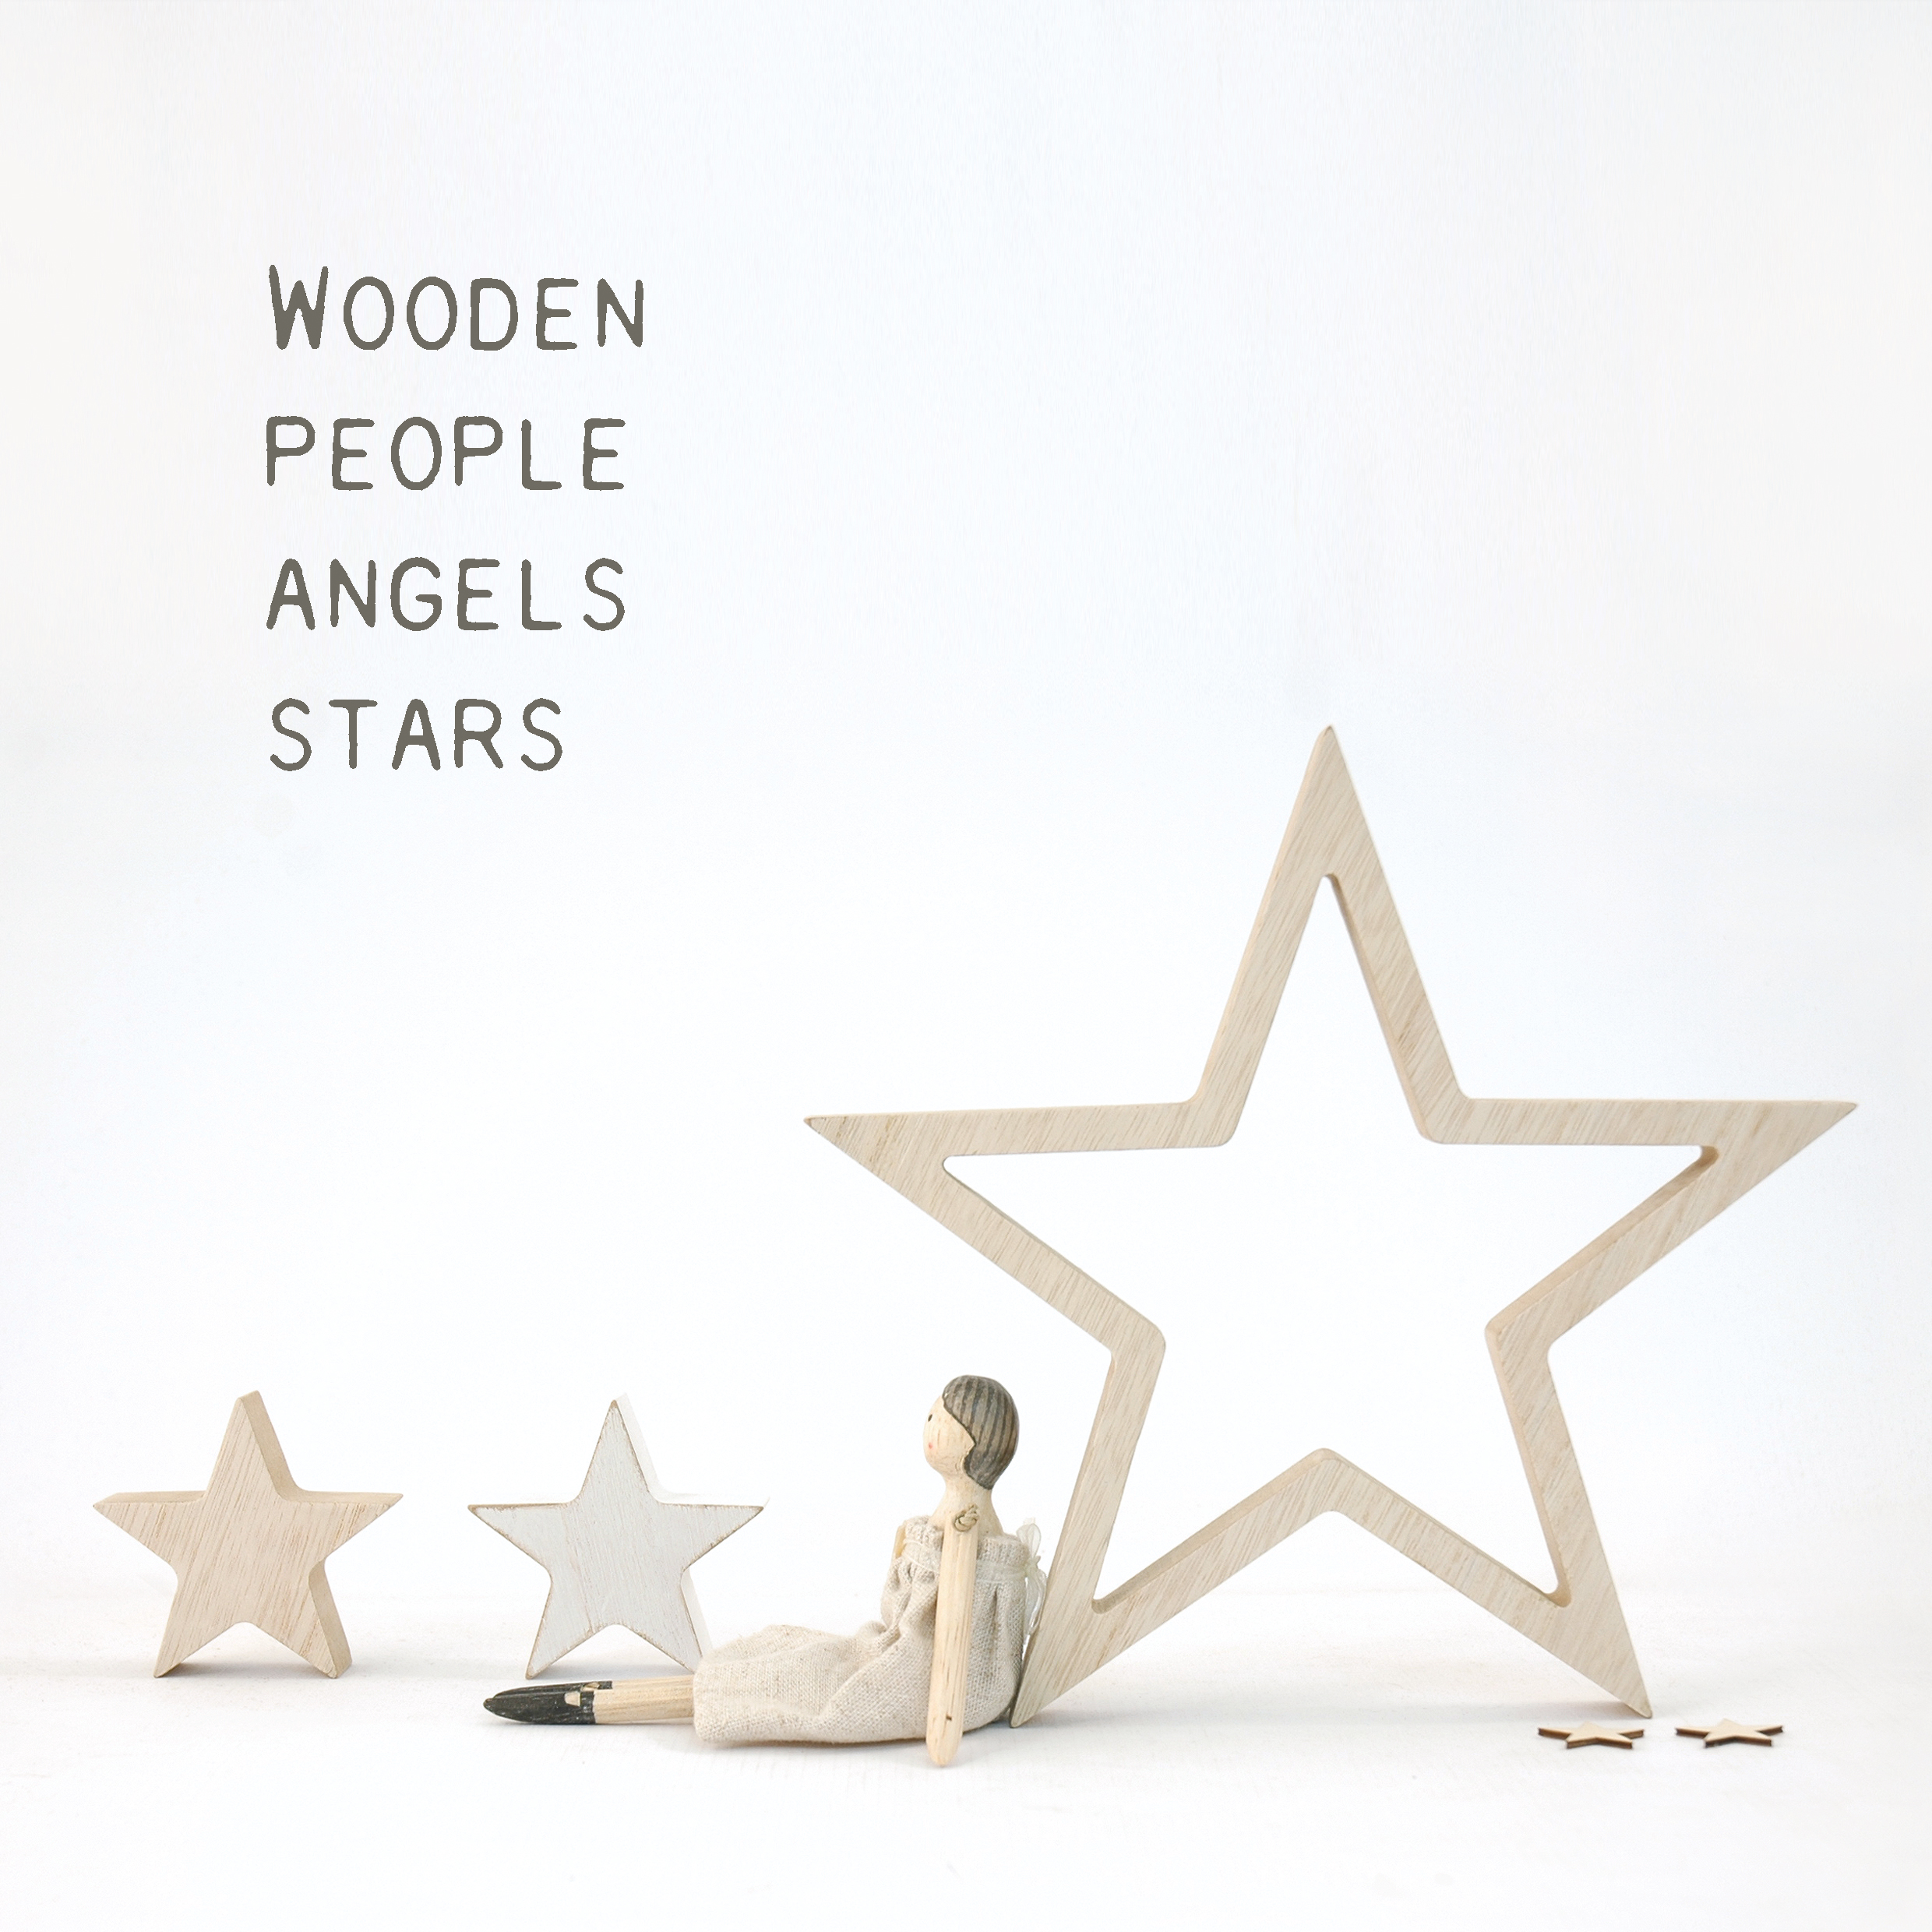 Angels, Stars & People